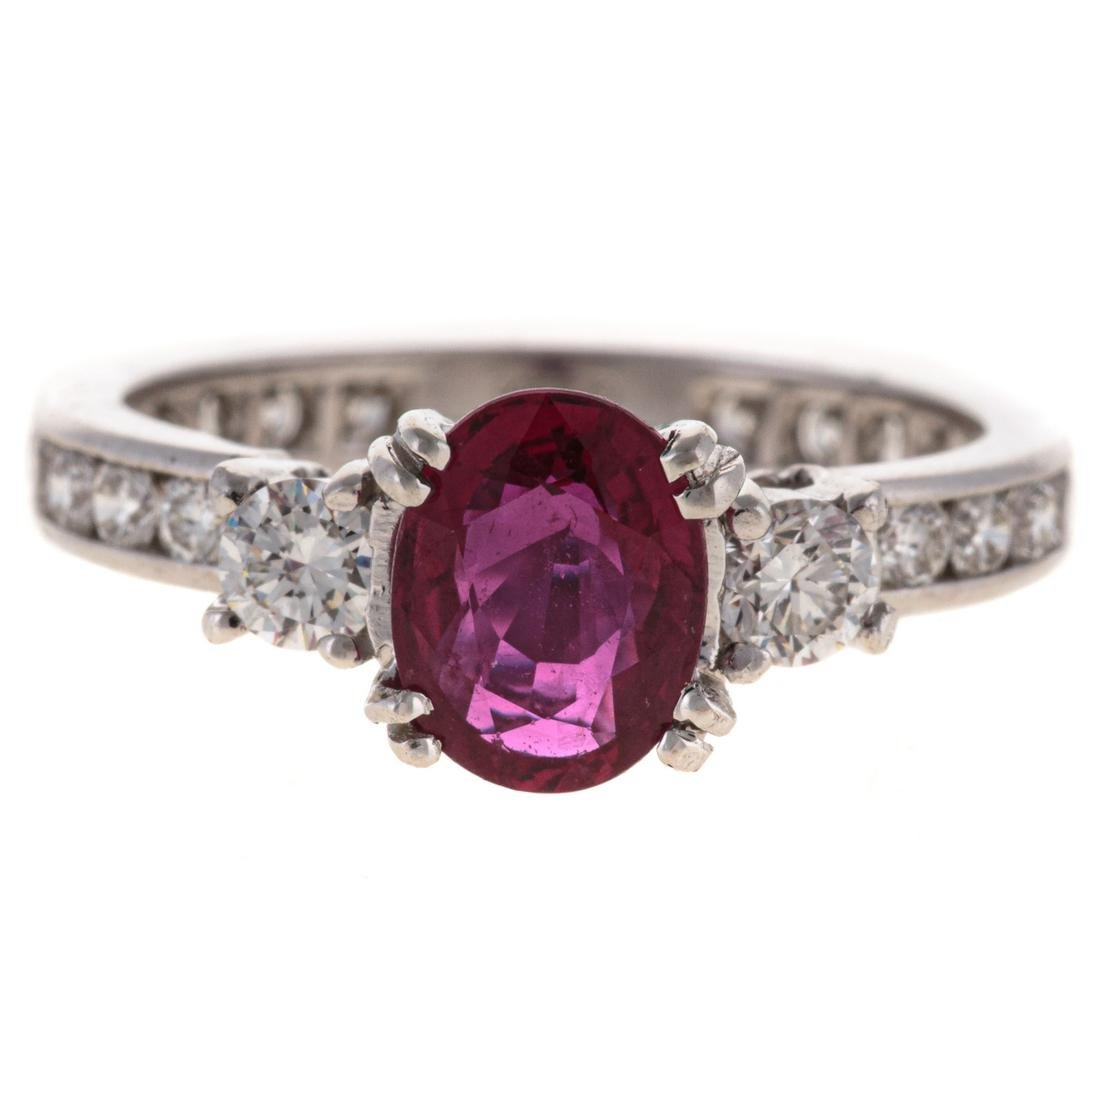 A Tiffany & Co Ruby & Diamond Ring in Platinum